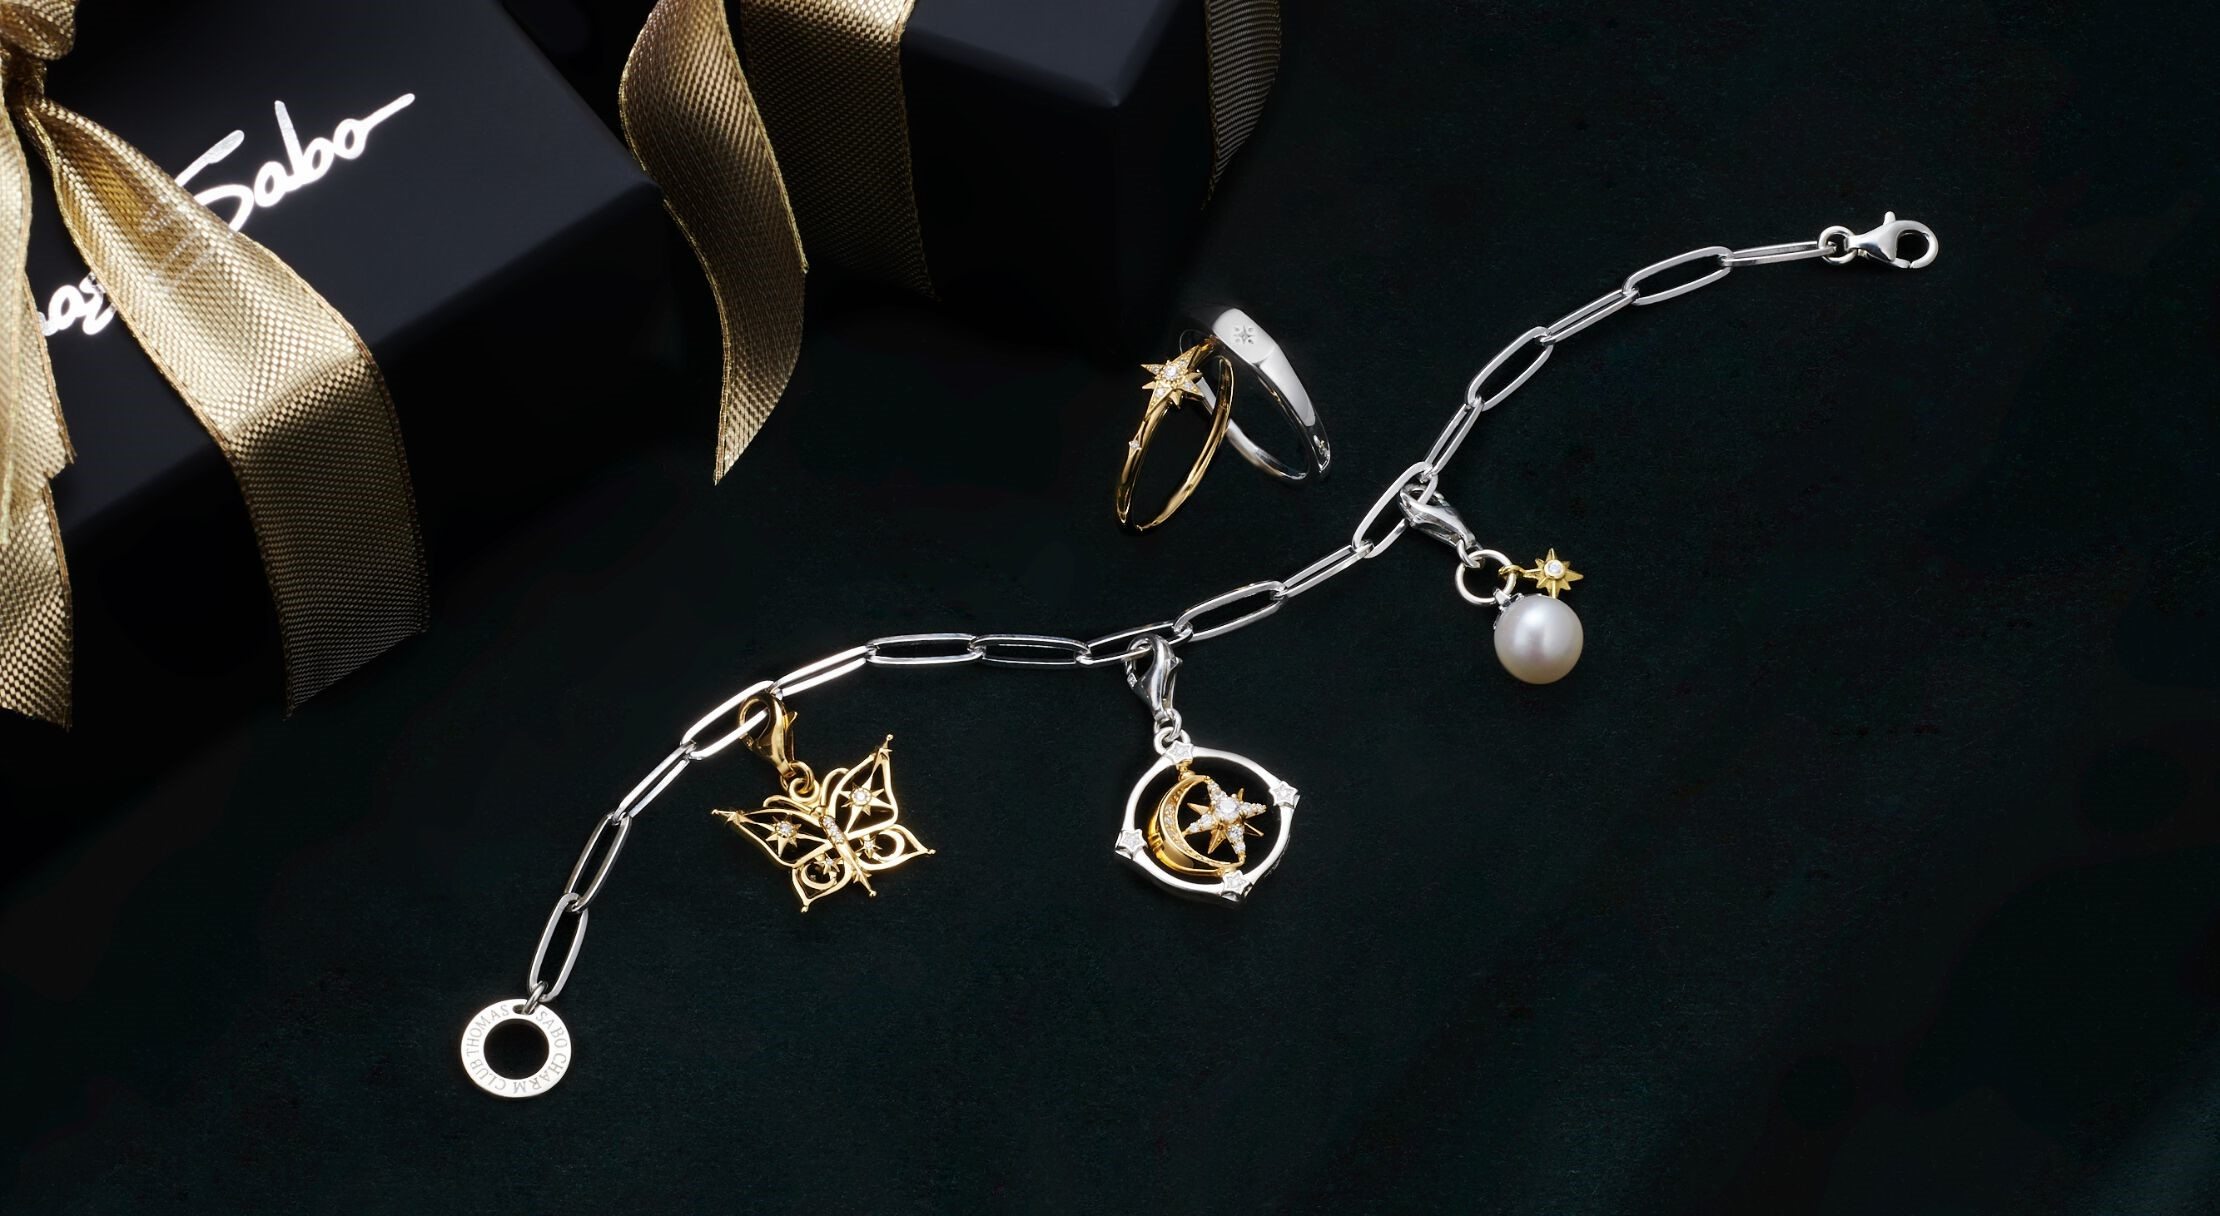 Thomas Sabo - Charm Jewellery - Stars and Moon Charms - Chain Bracelet - Gold and Silver Jewellery